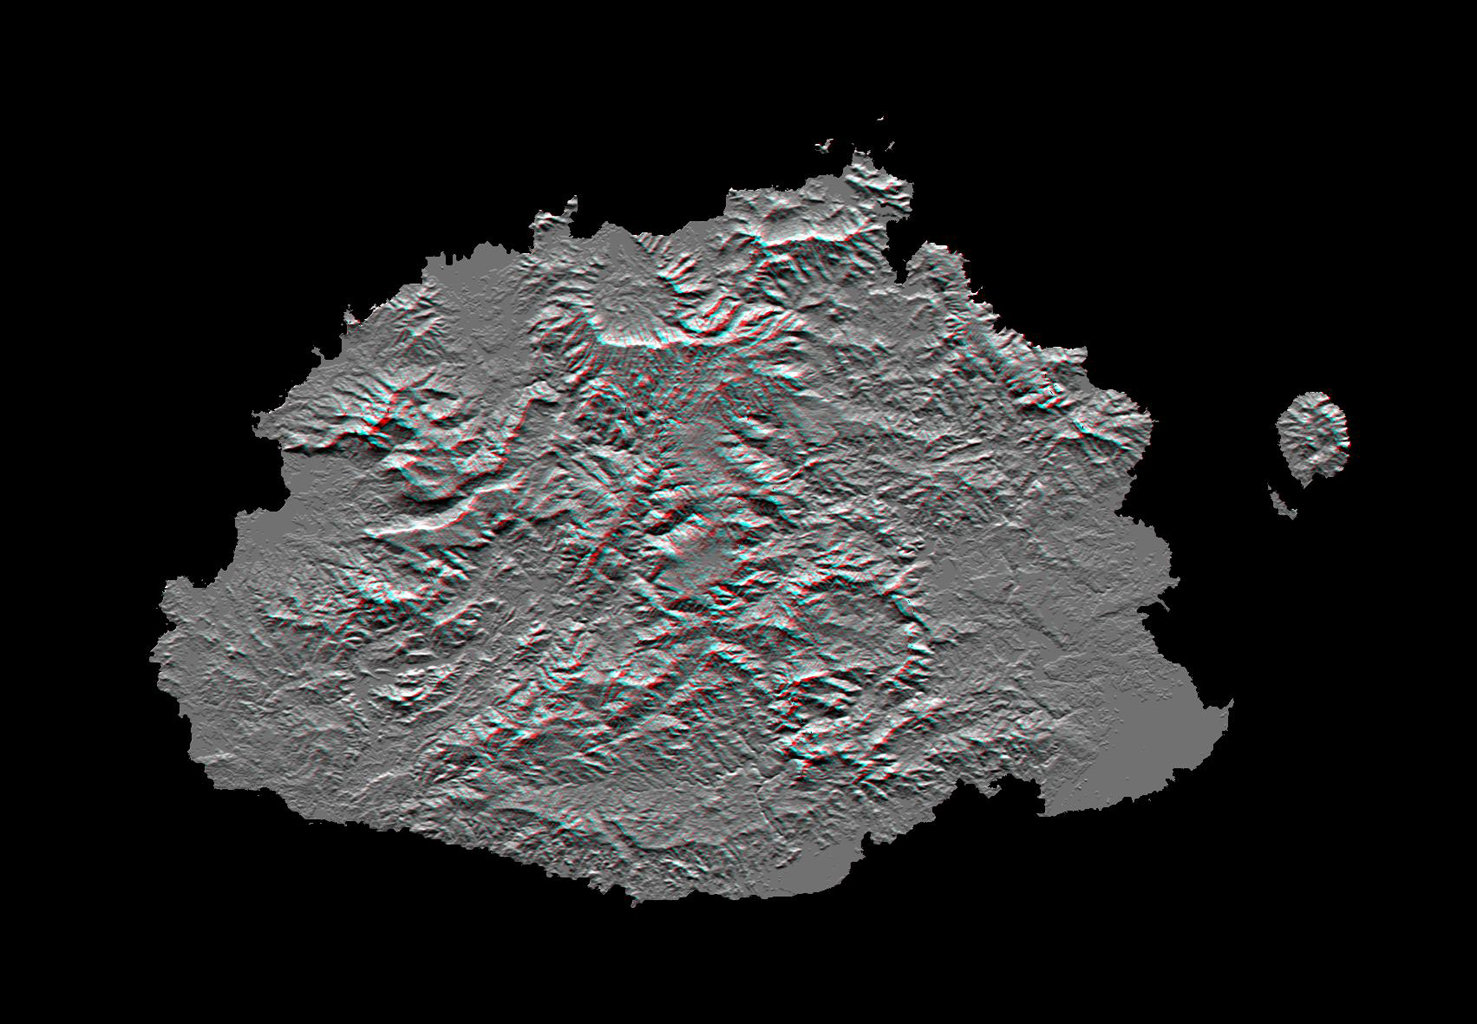 This anaglyph, from NASA's Shuttle Radar Topography Mission, shows Viti Levu, the largest island in the group some 332 islands commonly known as Fiji. 3D glasses are necessary to view this image.